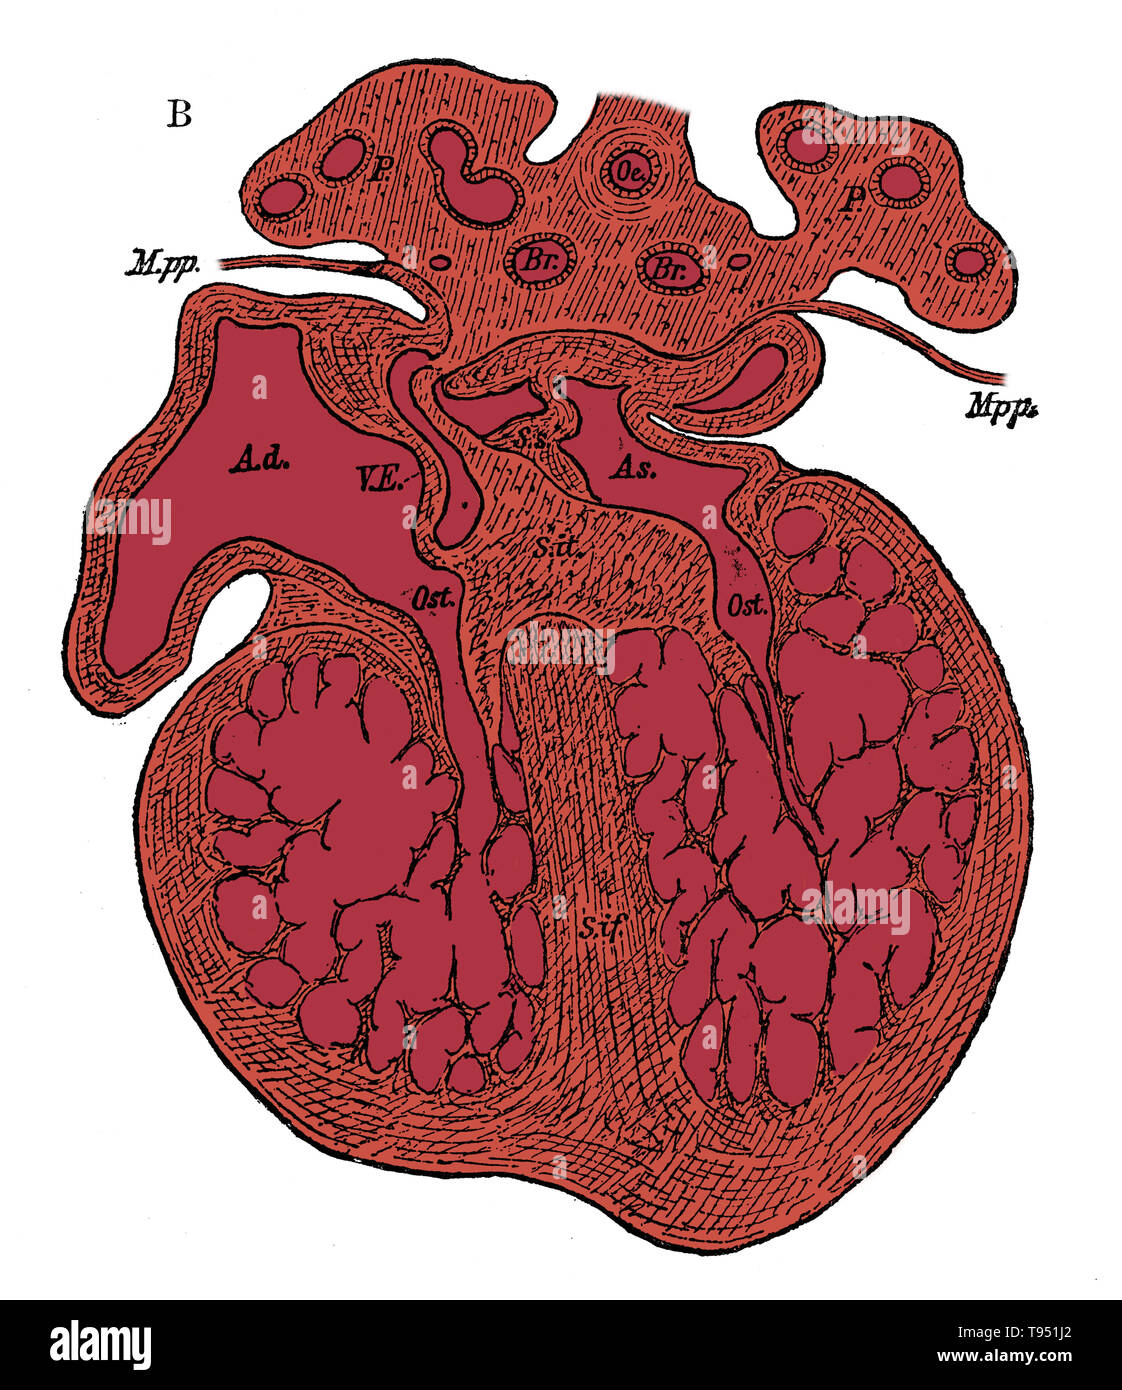 Section through the heart of human embryo showing the formation of the cardiac septa and the auriculo-ventricular valves, (see 9N3690) from a somewhat more advanced embryo. Ad, As, right and left auricle; Ost, auriculo-ventricular apertures; S.s, septum superior of auricles; S. it, endocardial cushion (septum intermedium); S. if, septum infers ventriculorum, now denser and more muscular. Jones Quain (November, 1796 - January 31, 1865) was an Irish anatomist, professor of Anatomy and Physiology in the University of London, and author of Elements of Anatomy. The first edition was published in 18 - Stock Image